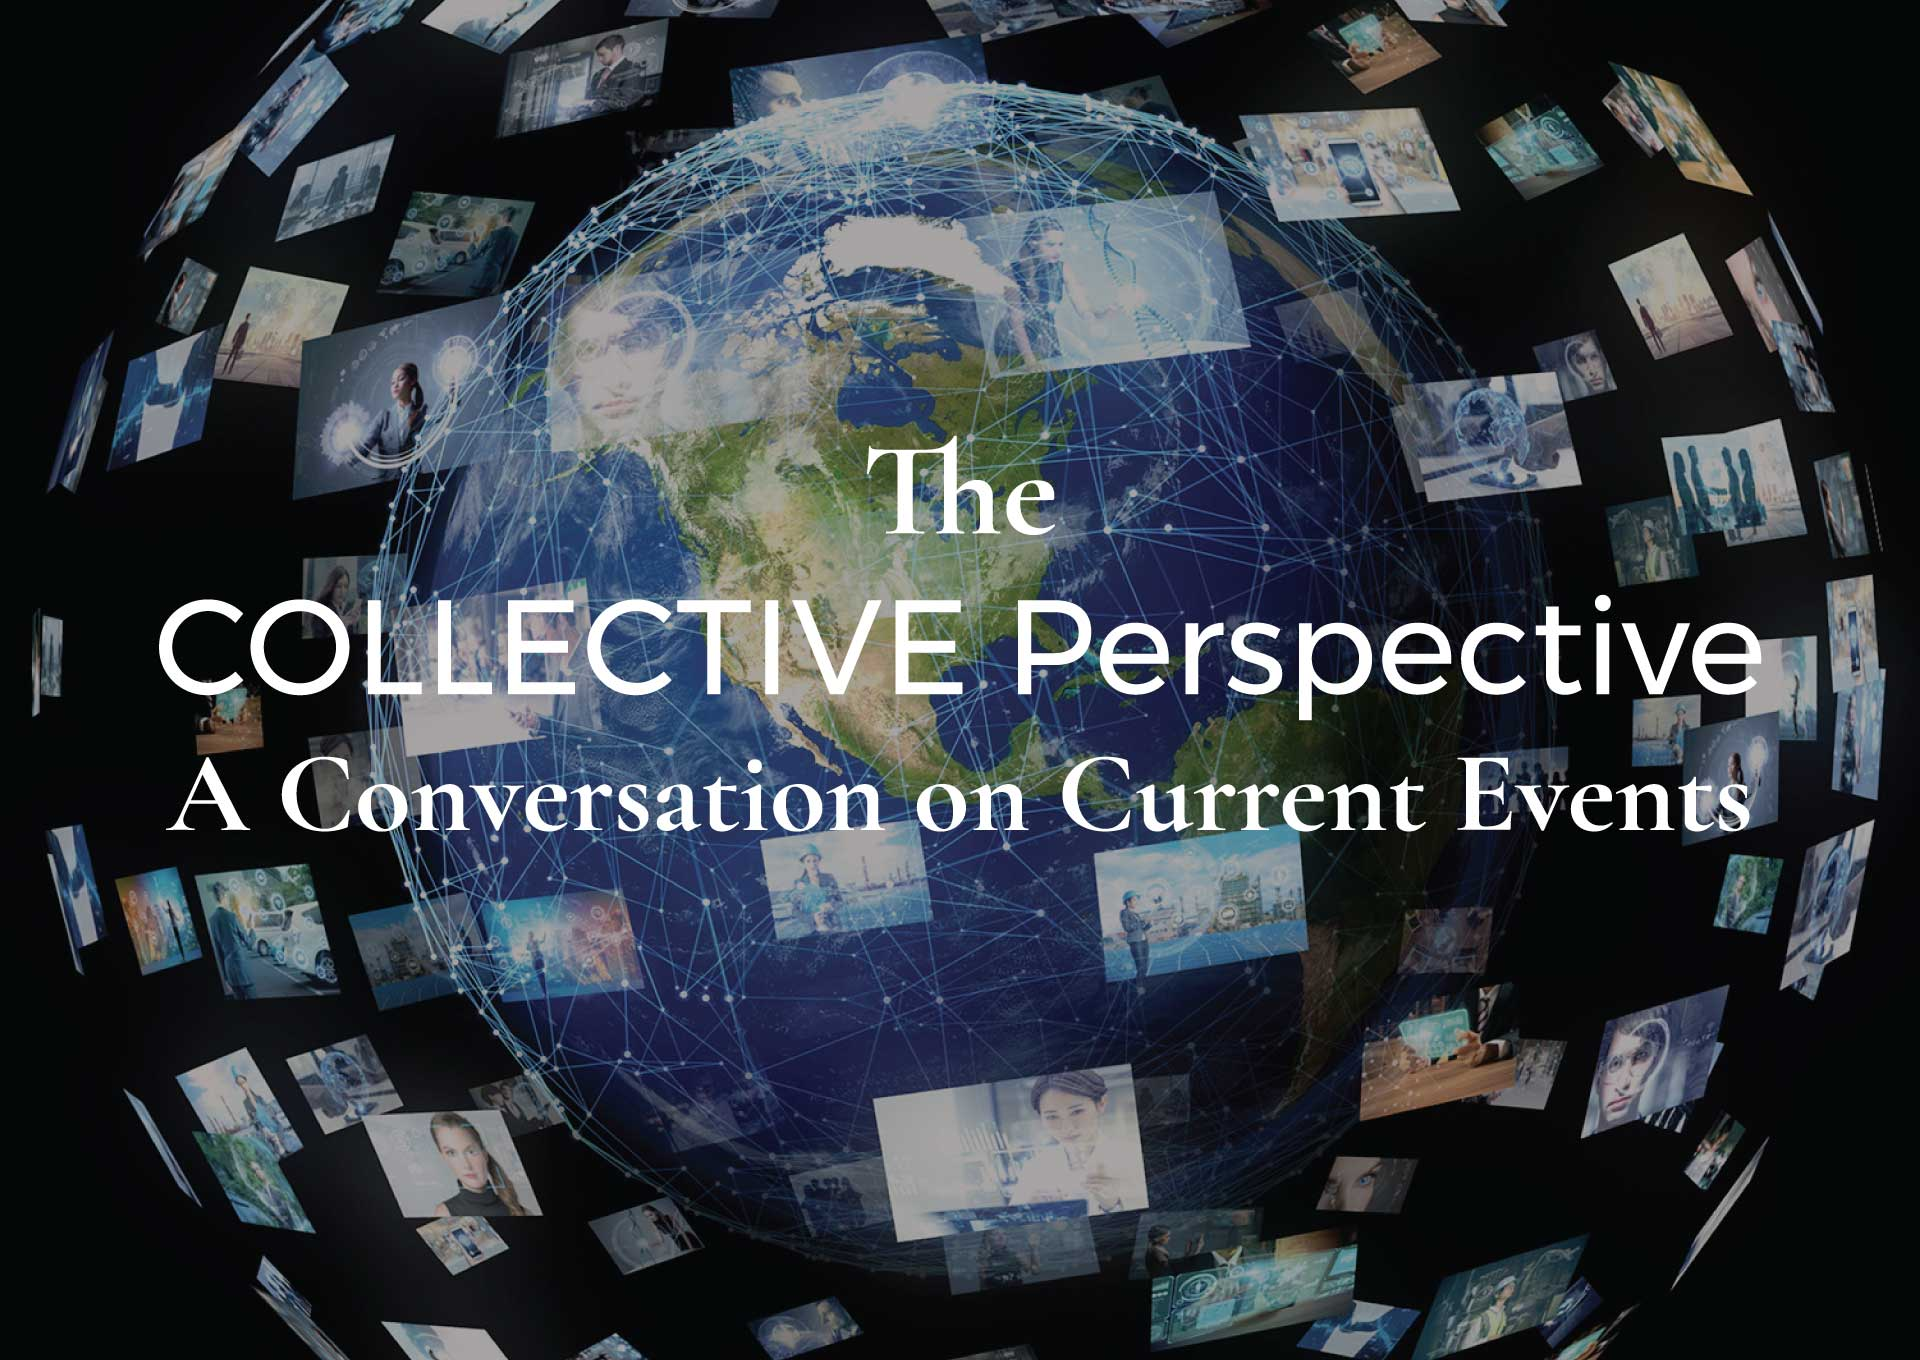 The Collective Perspective